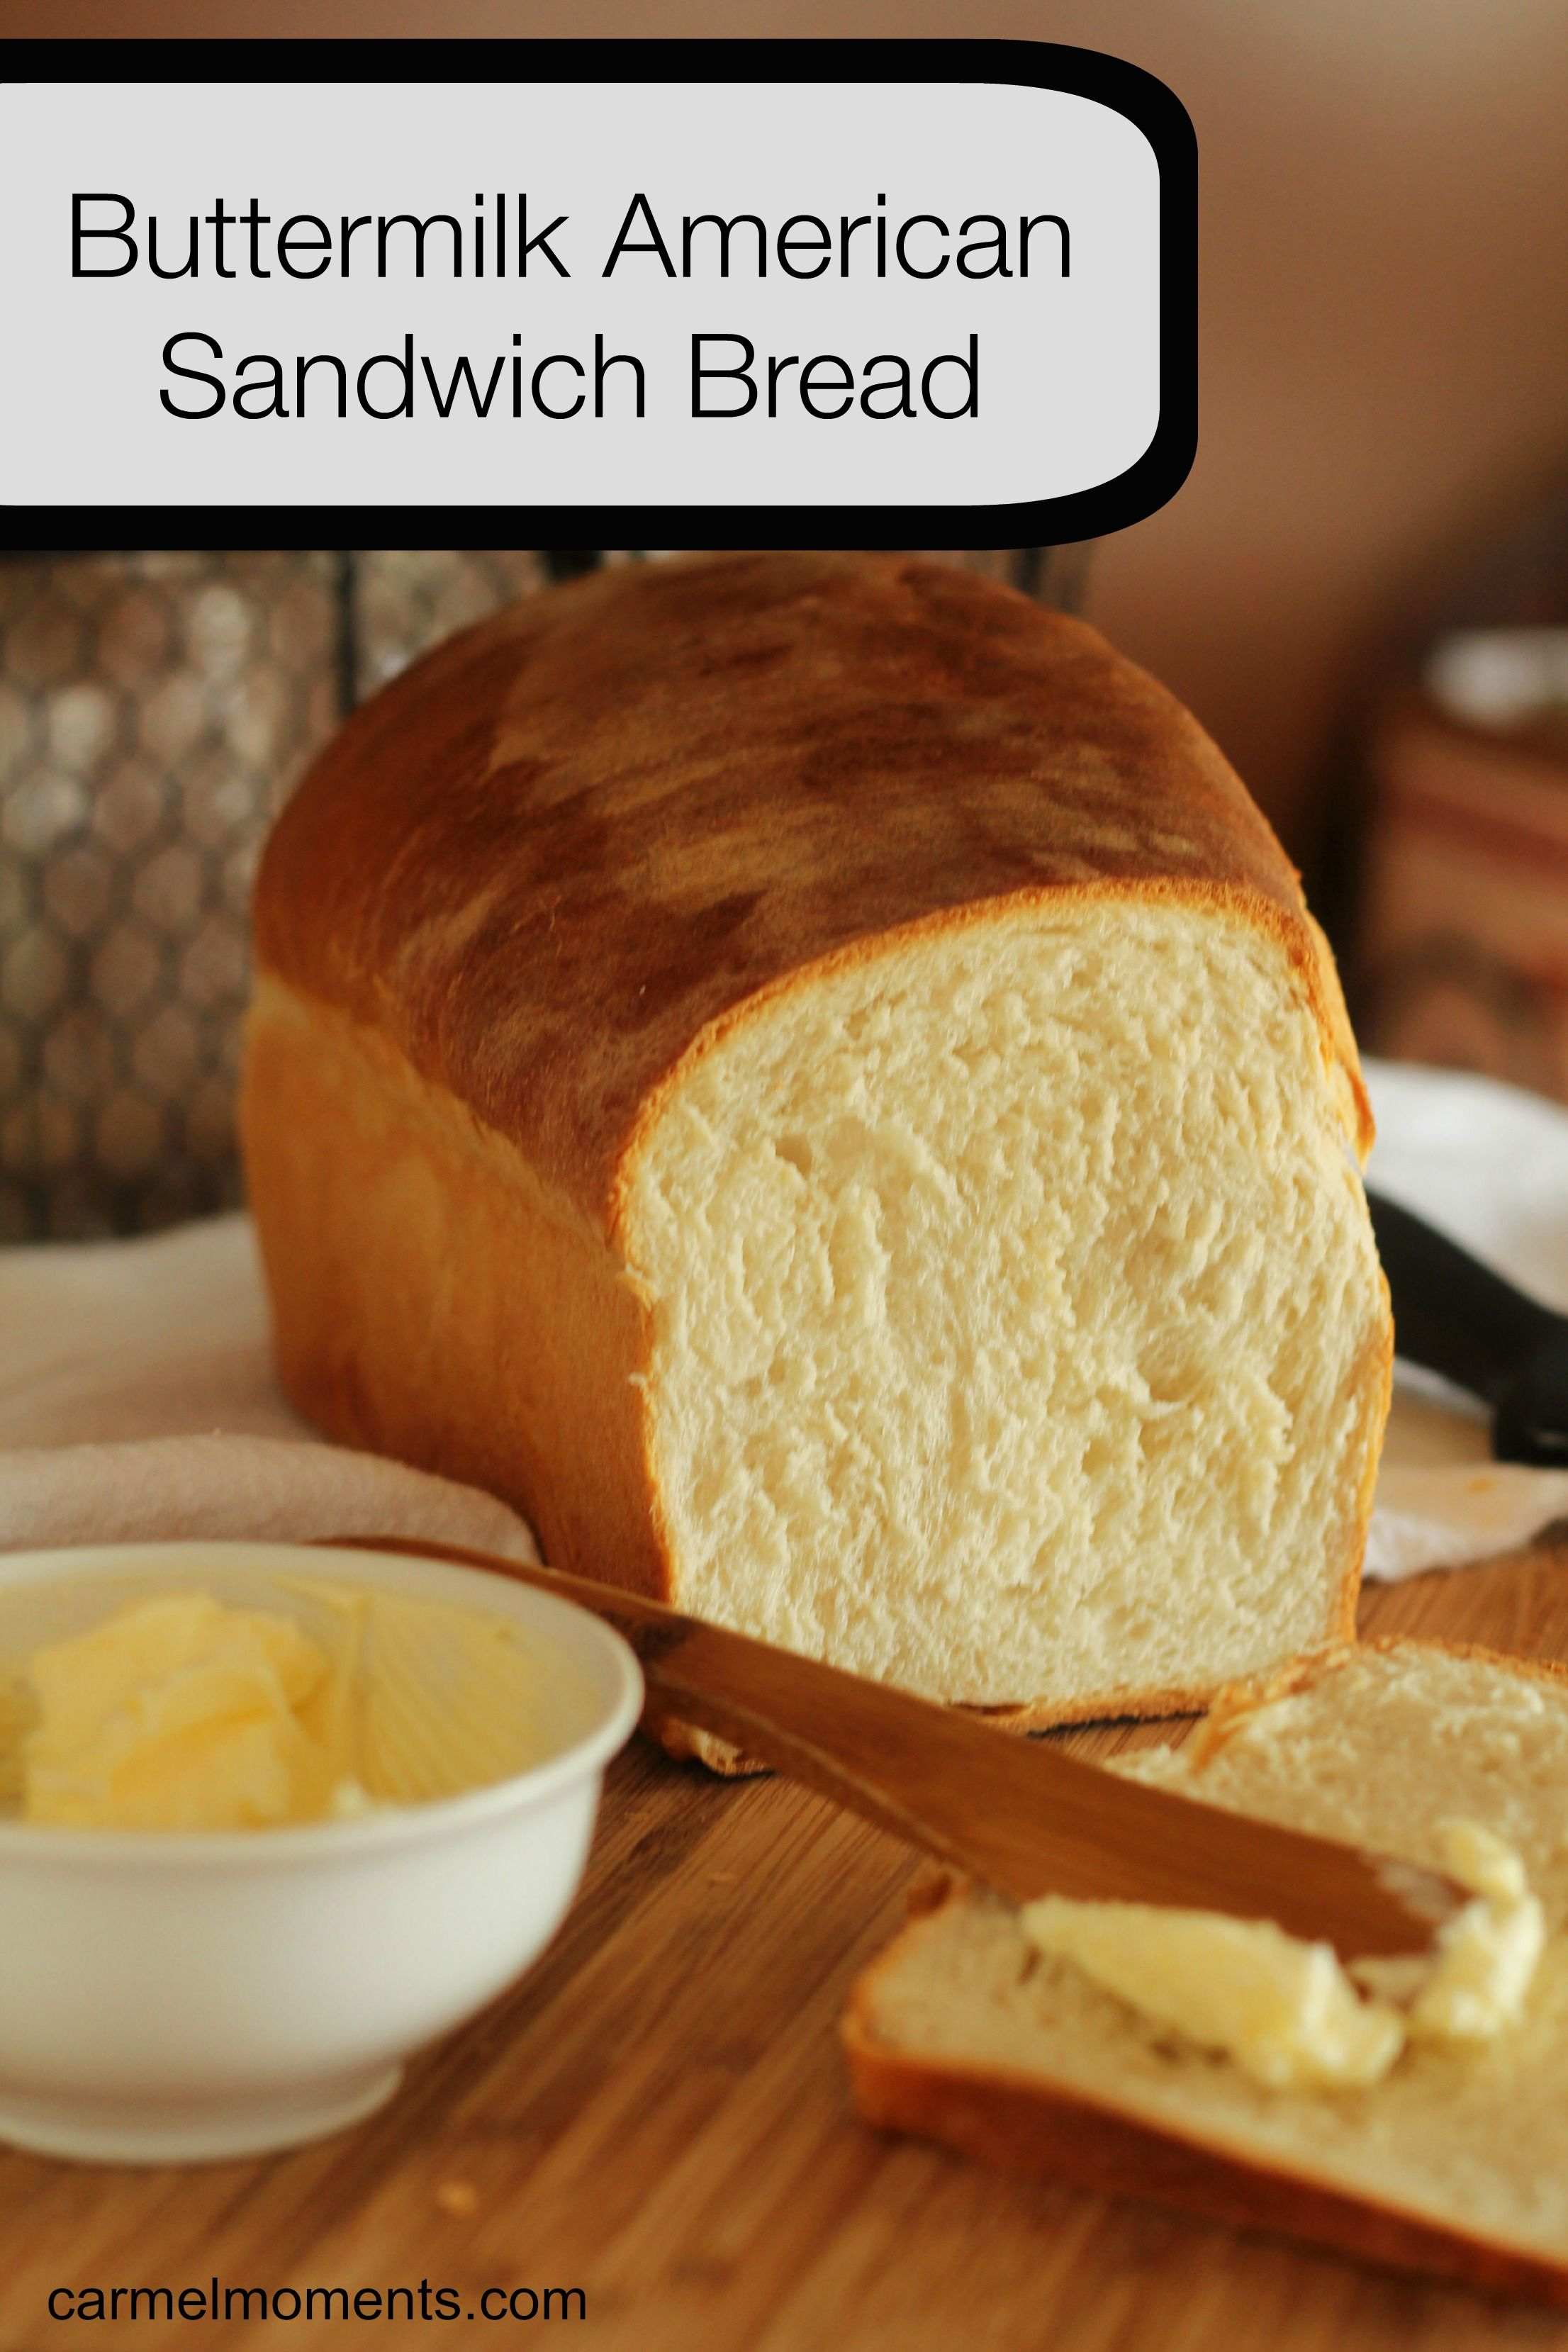 Buttermilk American Sandwich Bread